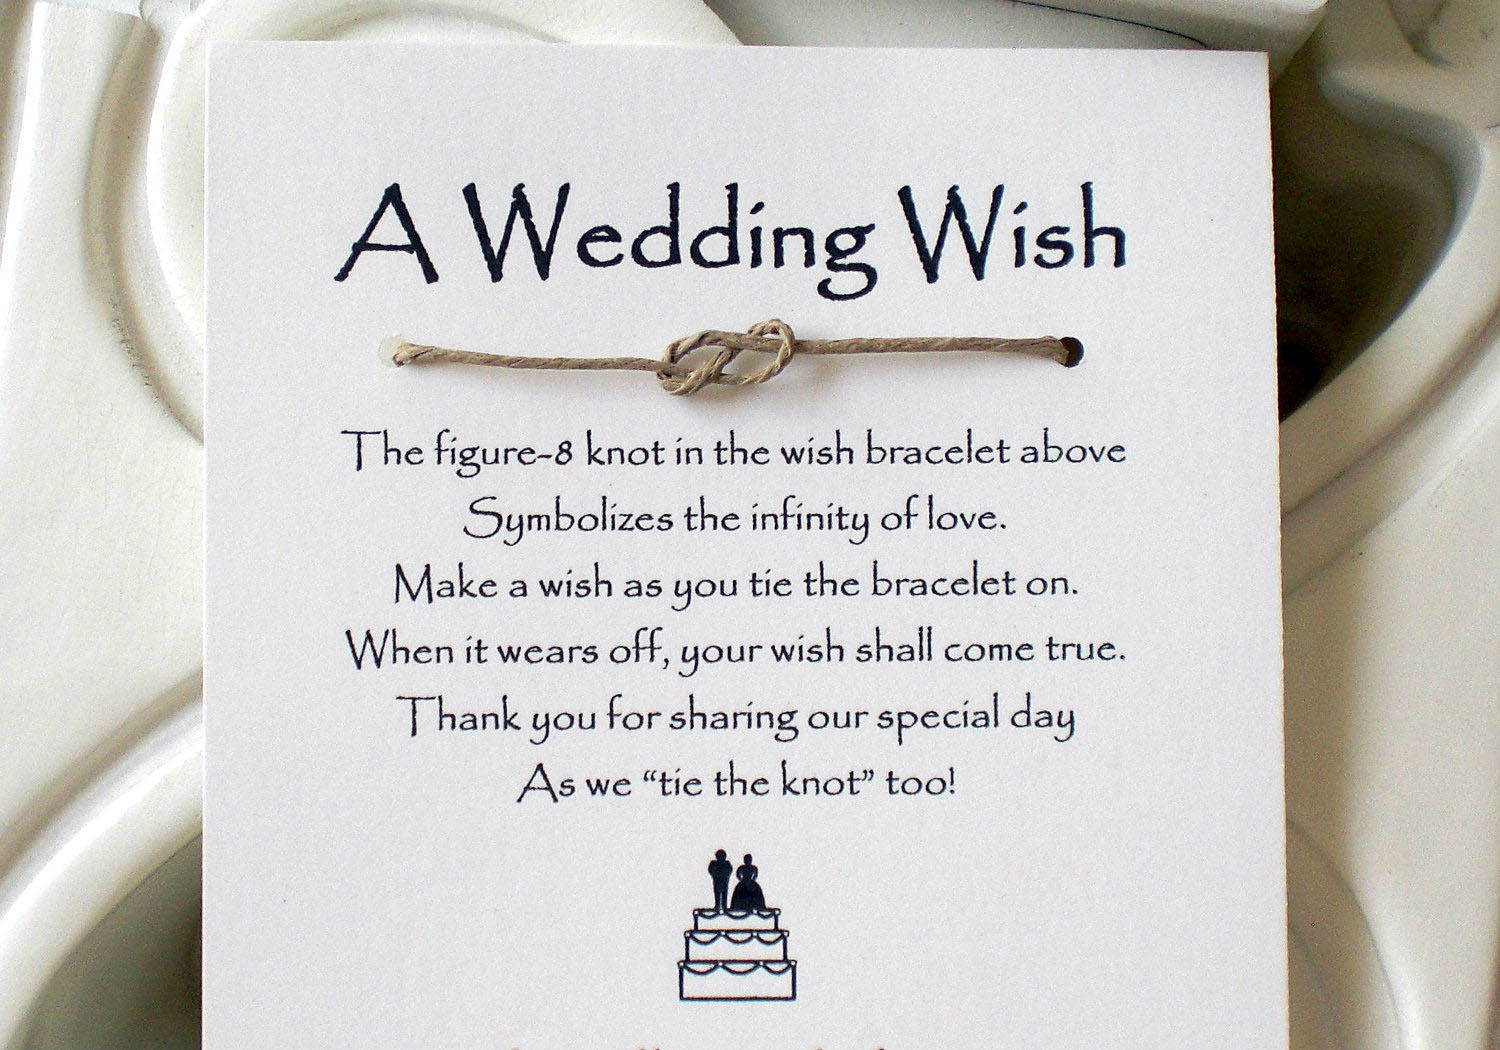 Love Marriage Quotes Pleasing Love Marriage Quotes For Wedding Cards  Good Morning Wishesgood